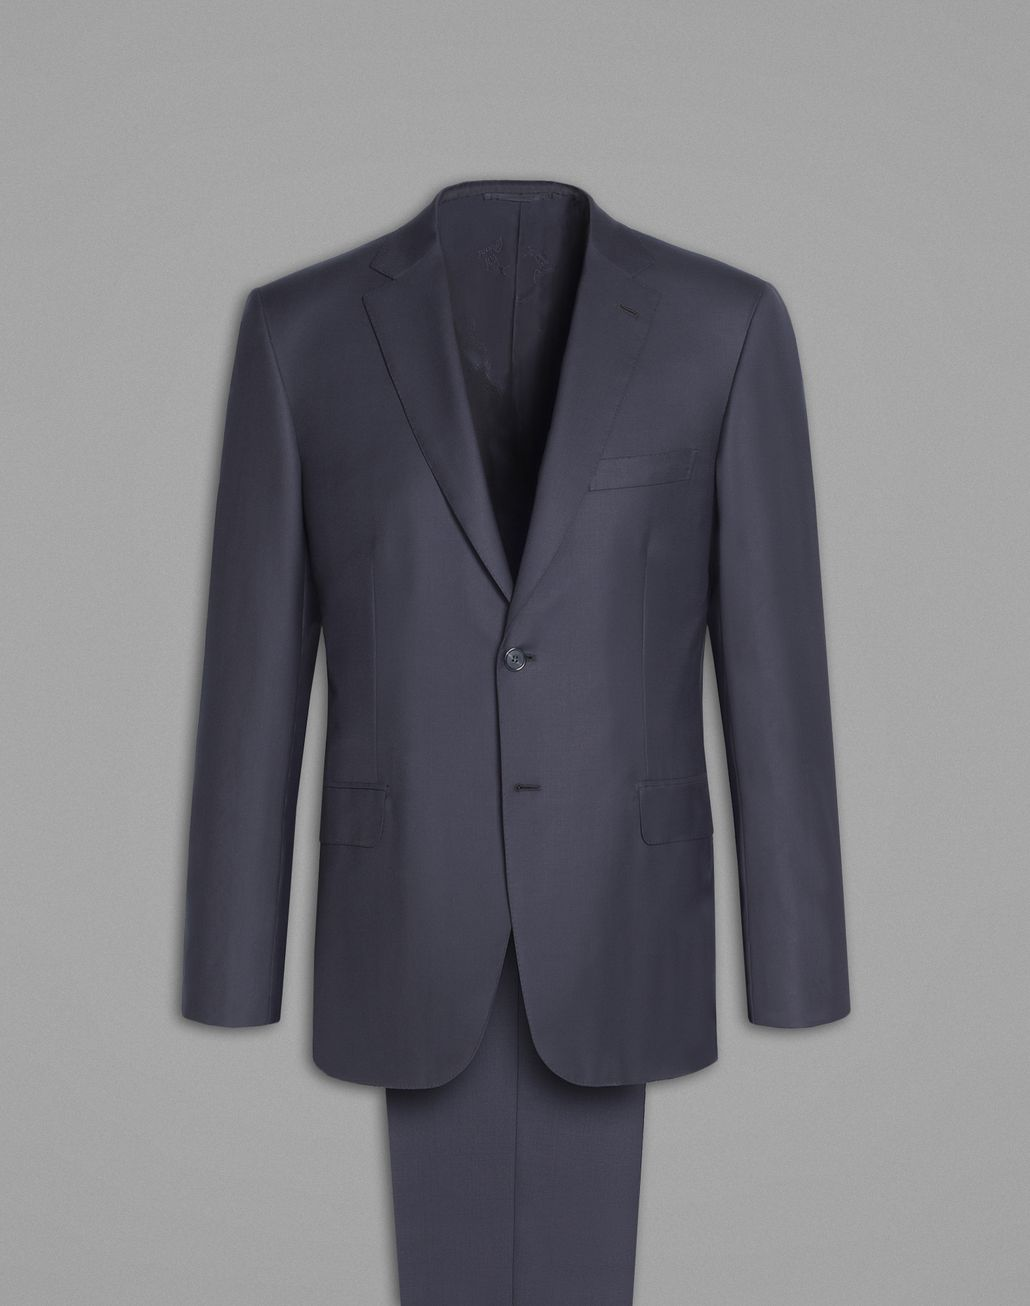 BRIONI 'Essential' Navy Blue Brunico Suit Suits & Jackets Man f